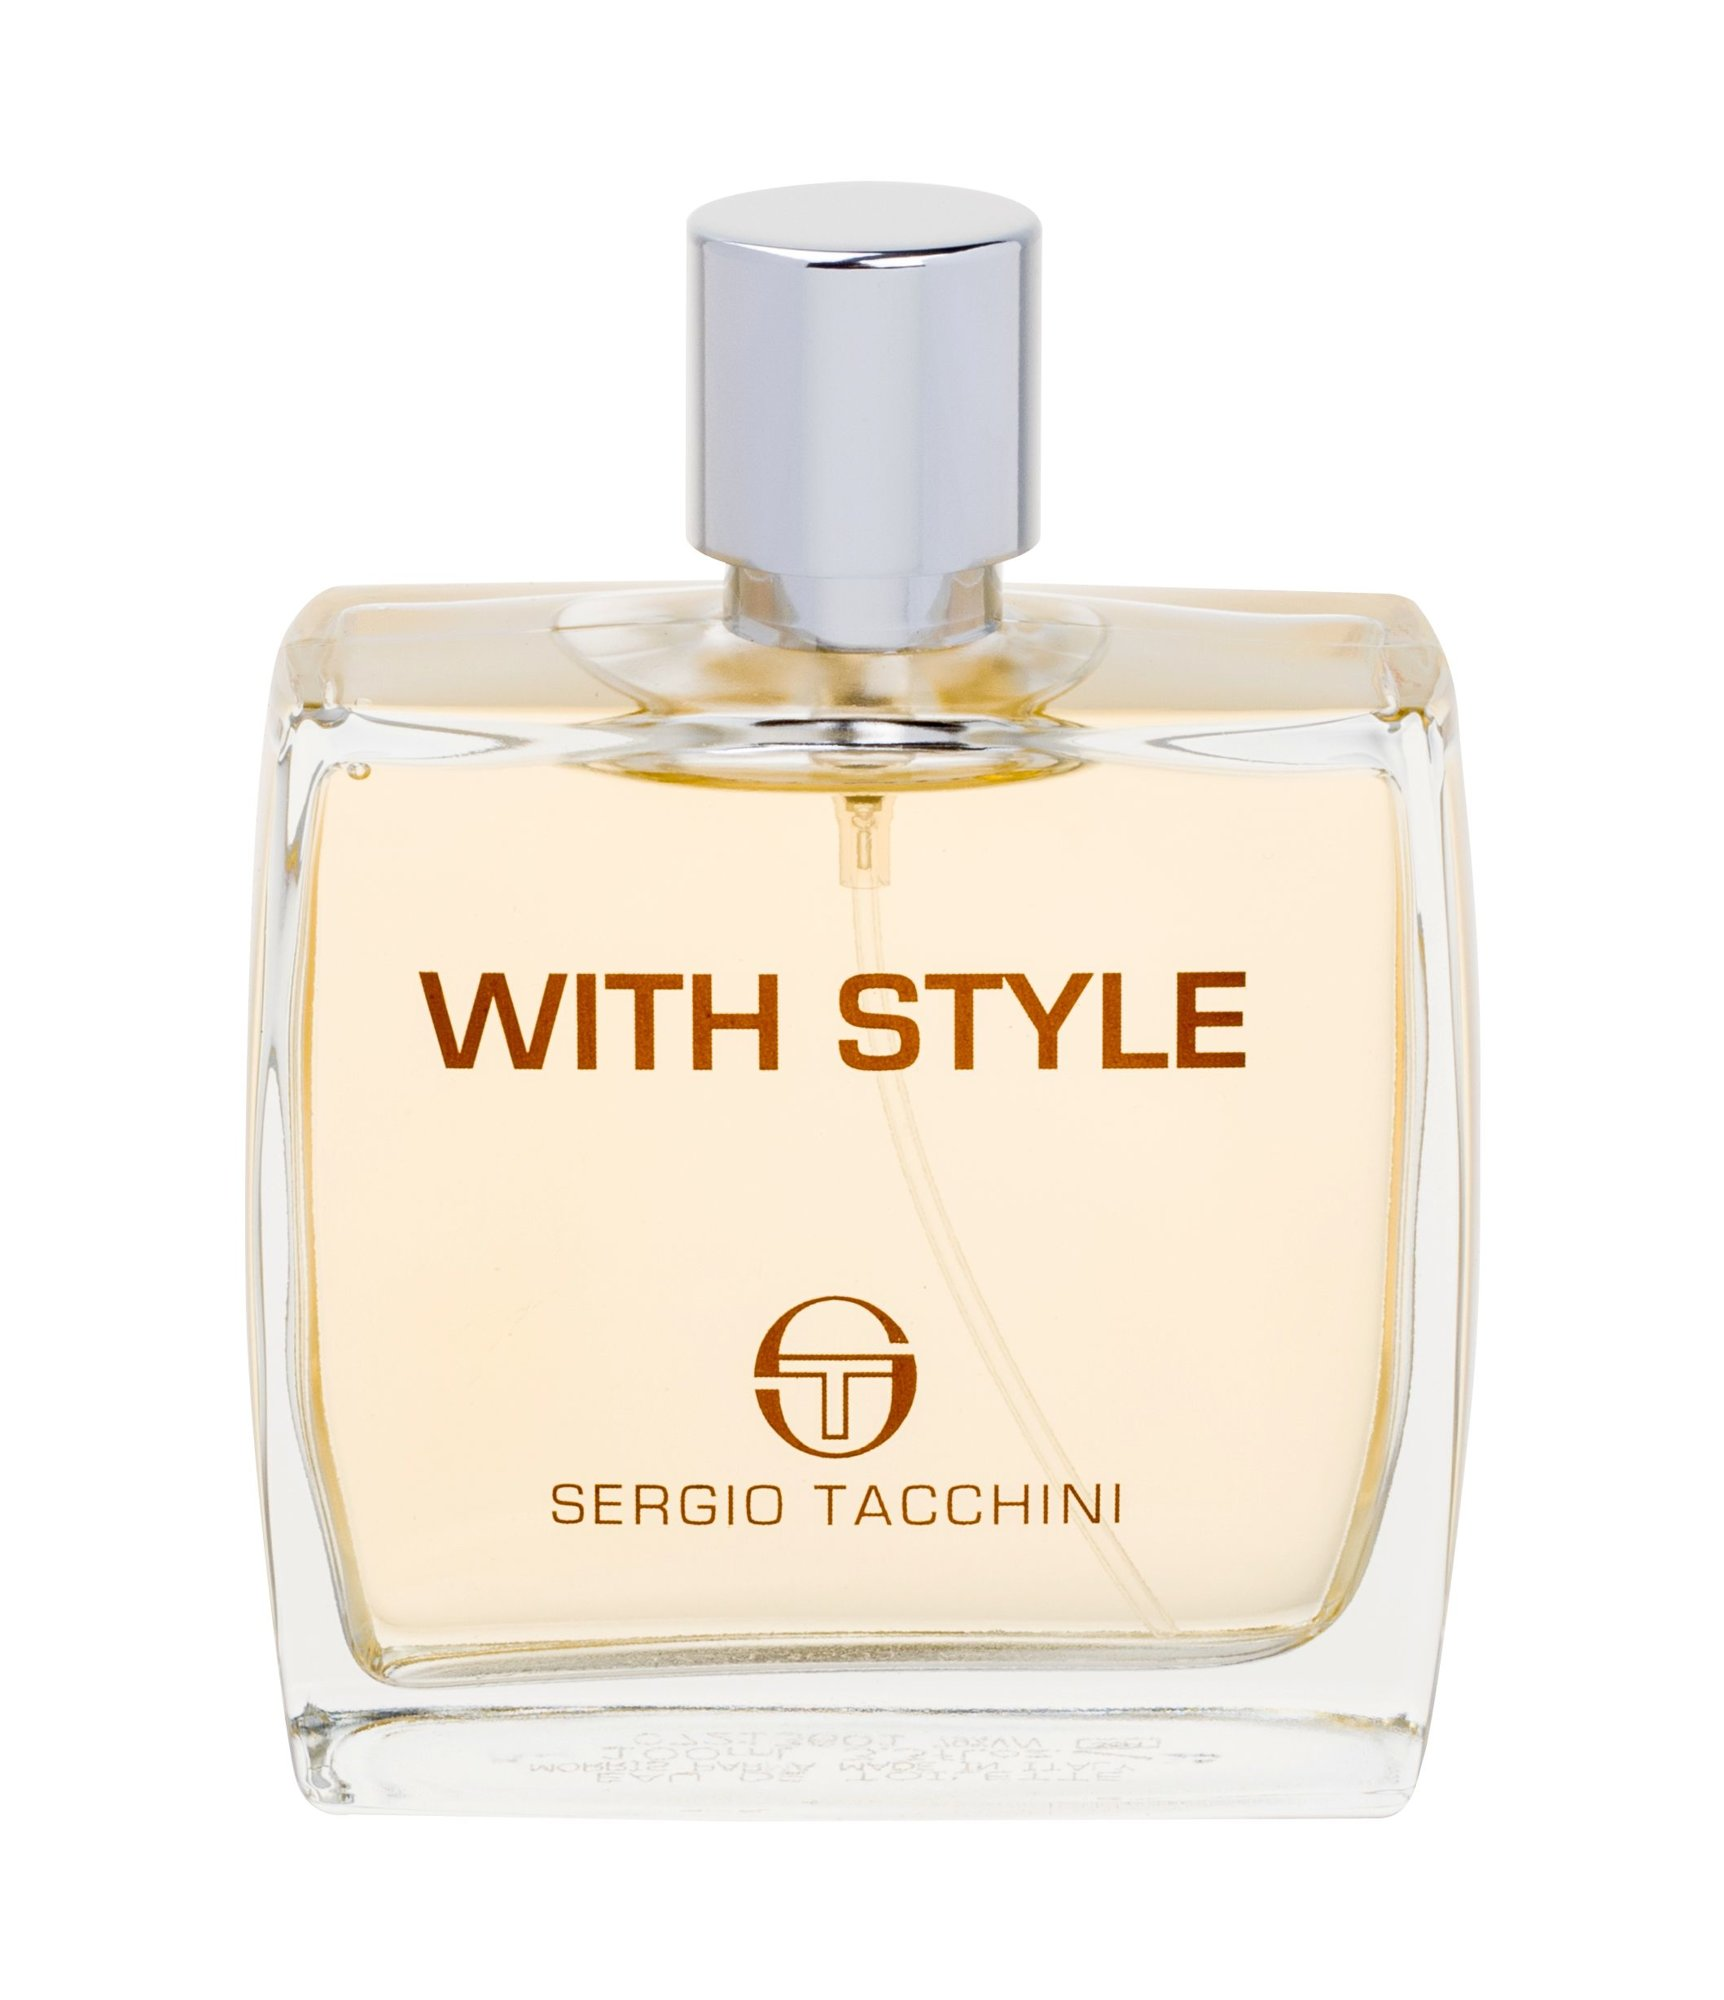 Sergio Tacchini With Style EDT 100ml